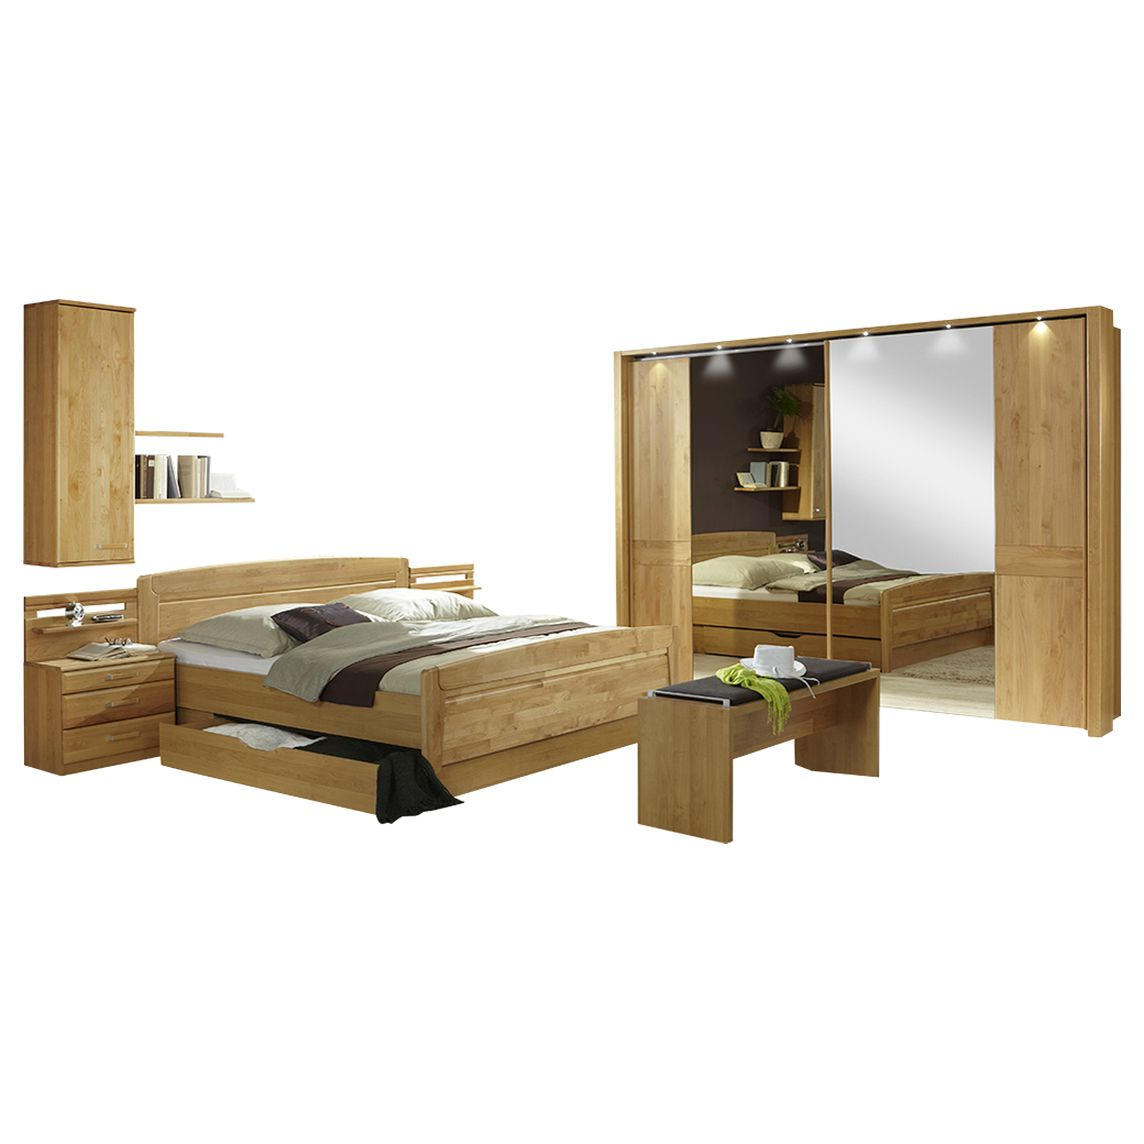 schlafzimmer komplett lausanne ii erle dekor erle massiv. Black Bedroom Furniture Sets. Home Design Ideas